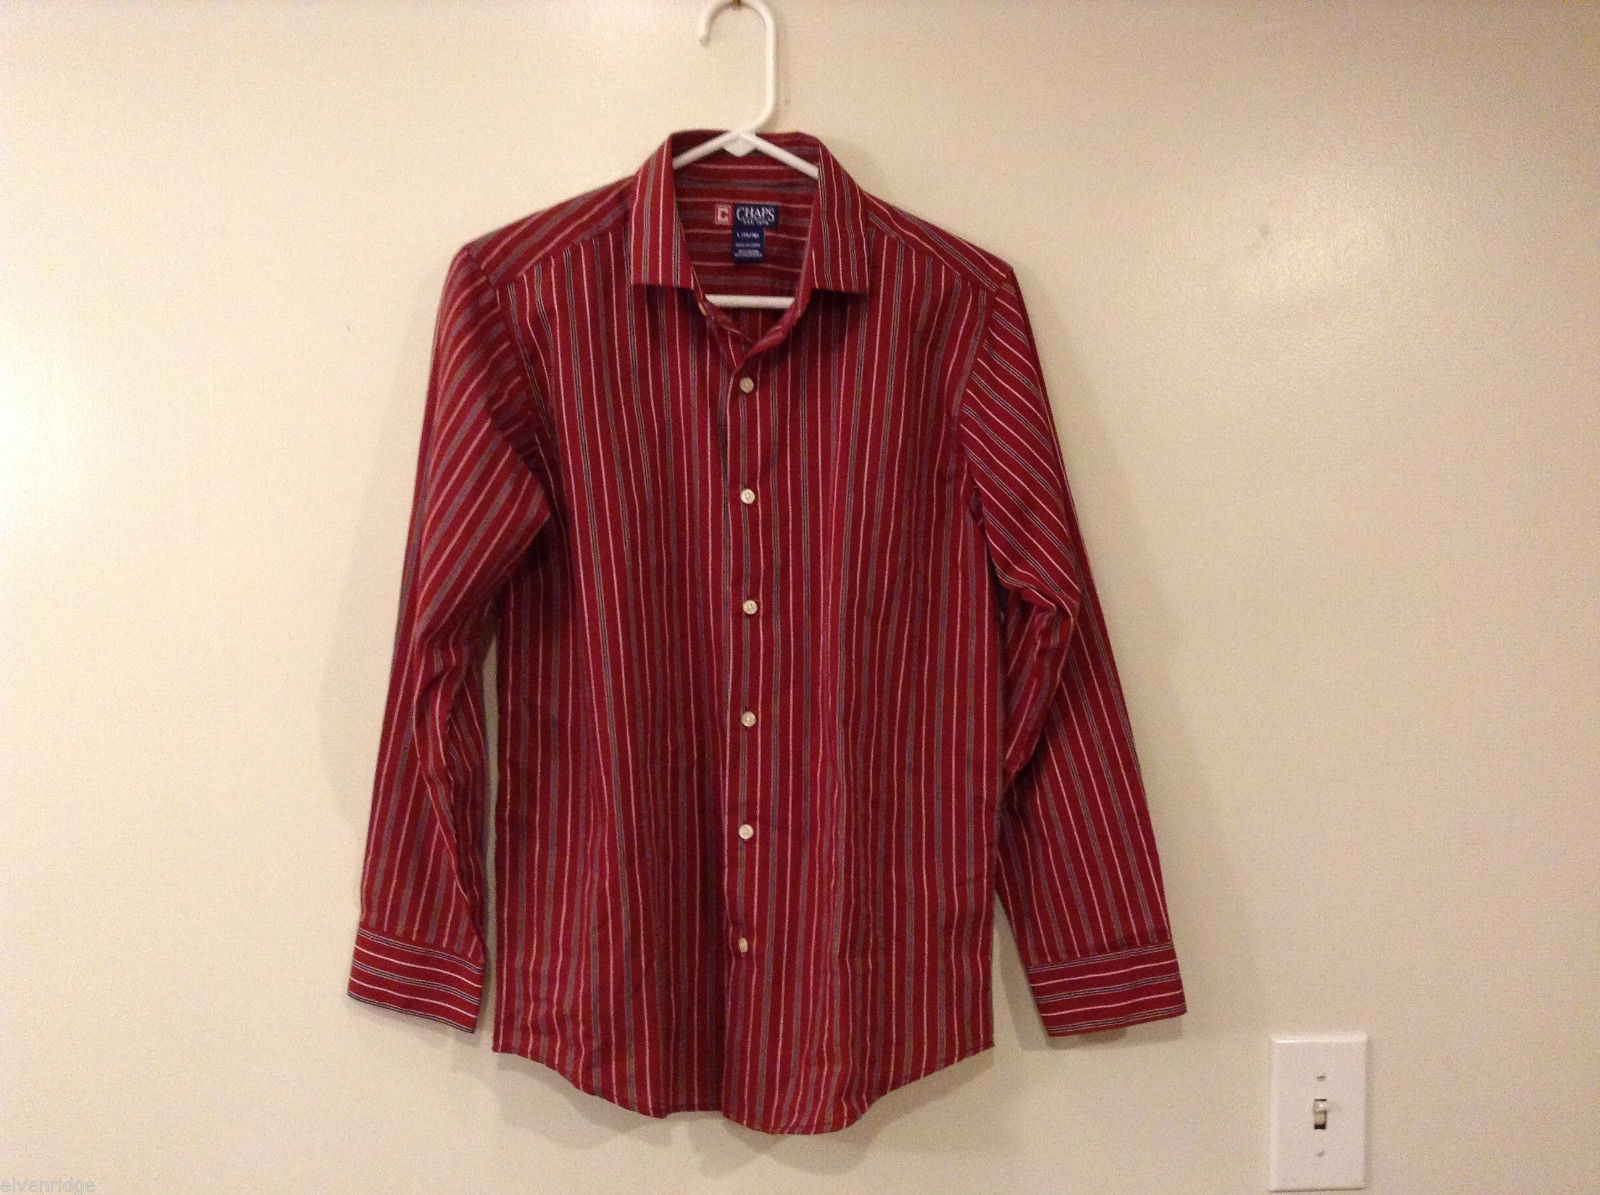 Boys/Young Men Chaps Brown Red Striped shirt cotton/polyest, size L(boys 14-16)